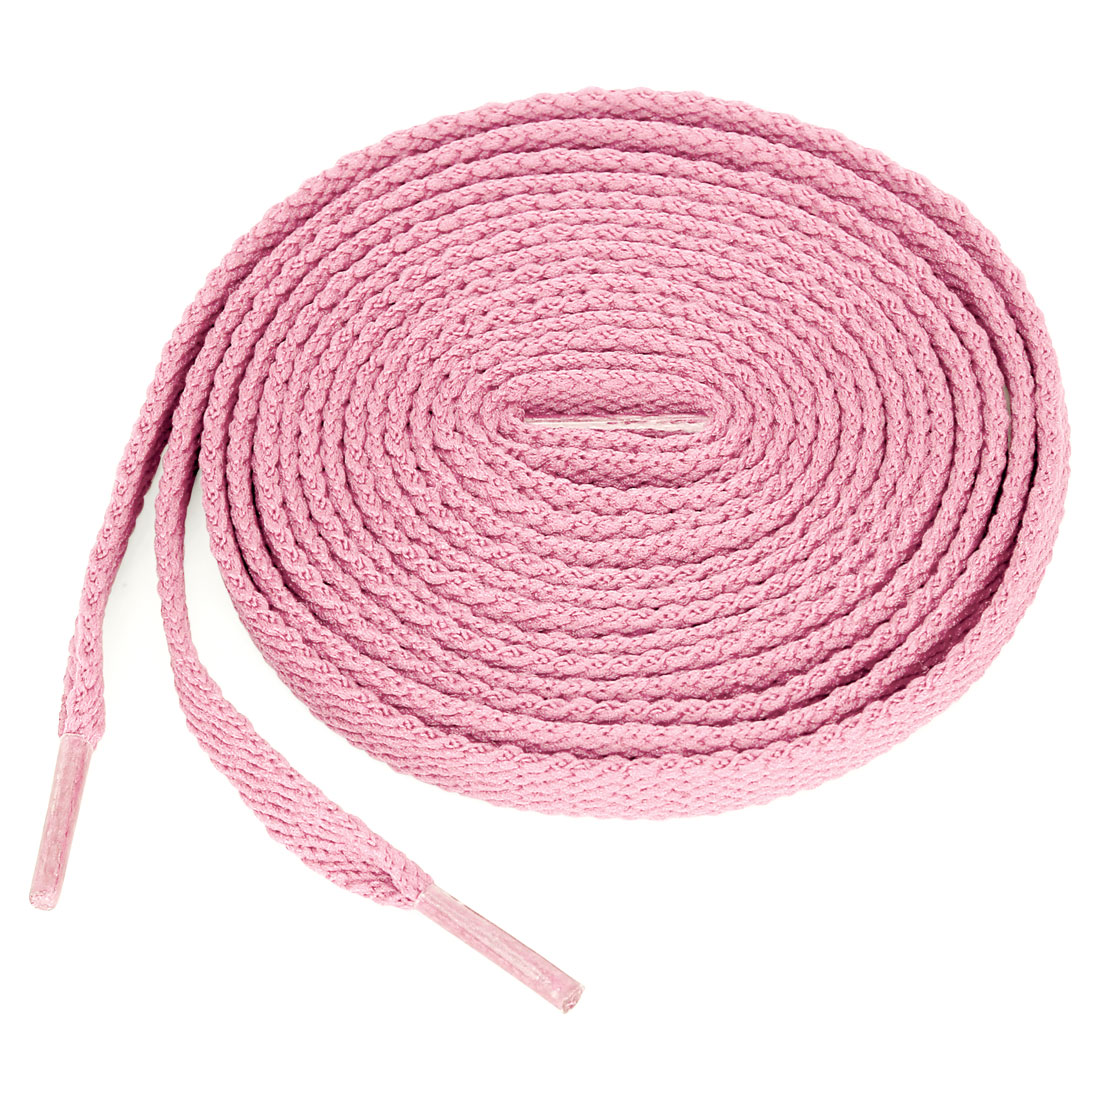 All Lengths Made in the USA! Pink FLAT Athletic Shoelace Laces 1 Pair